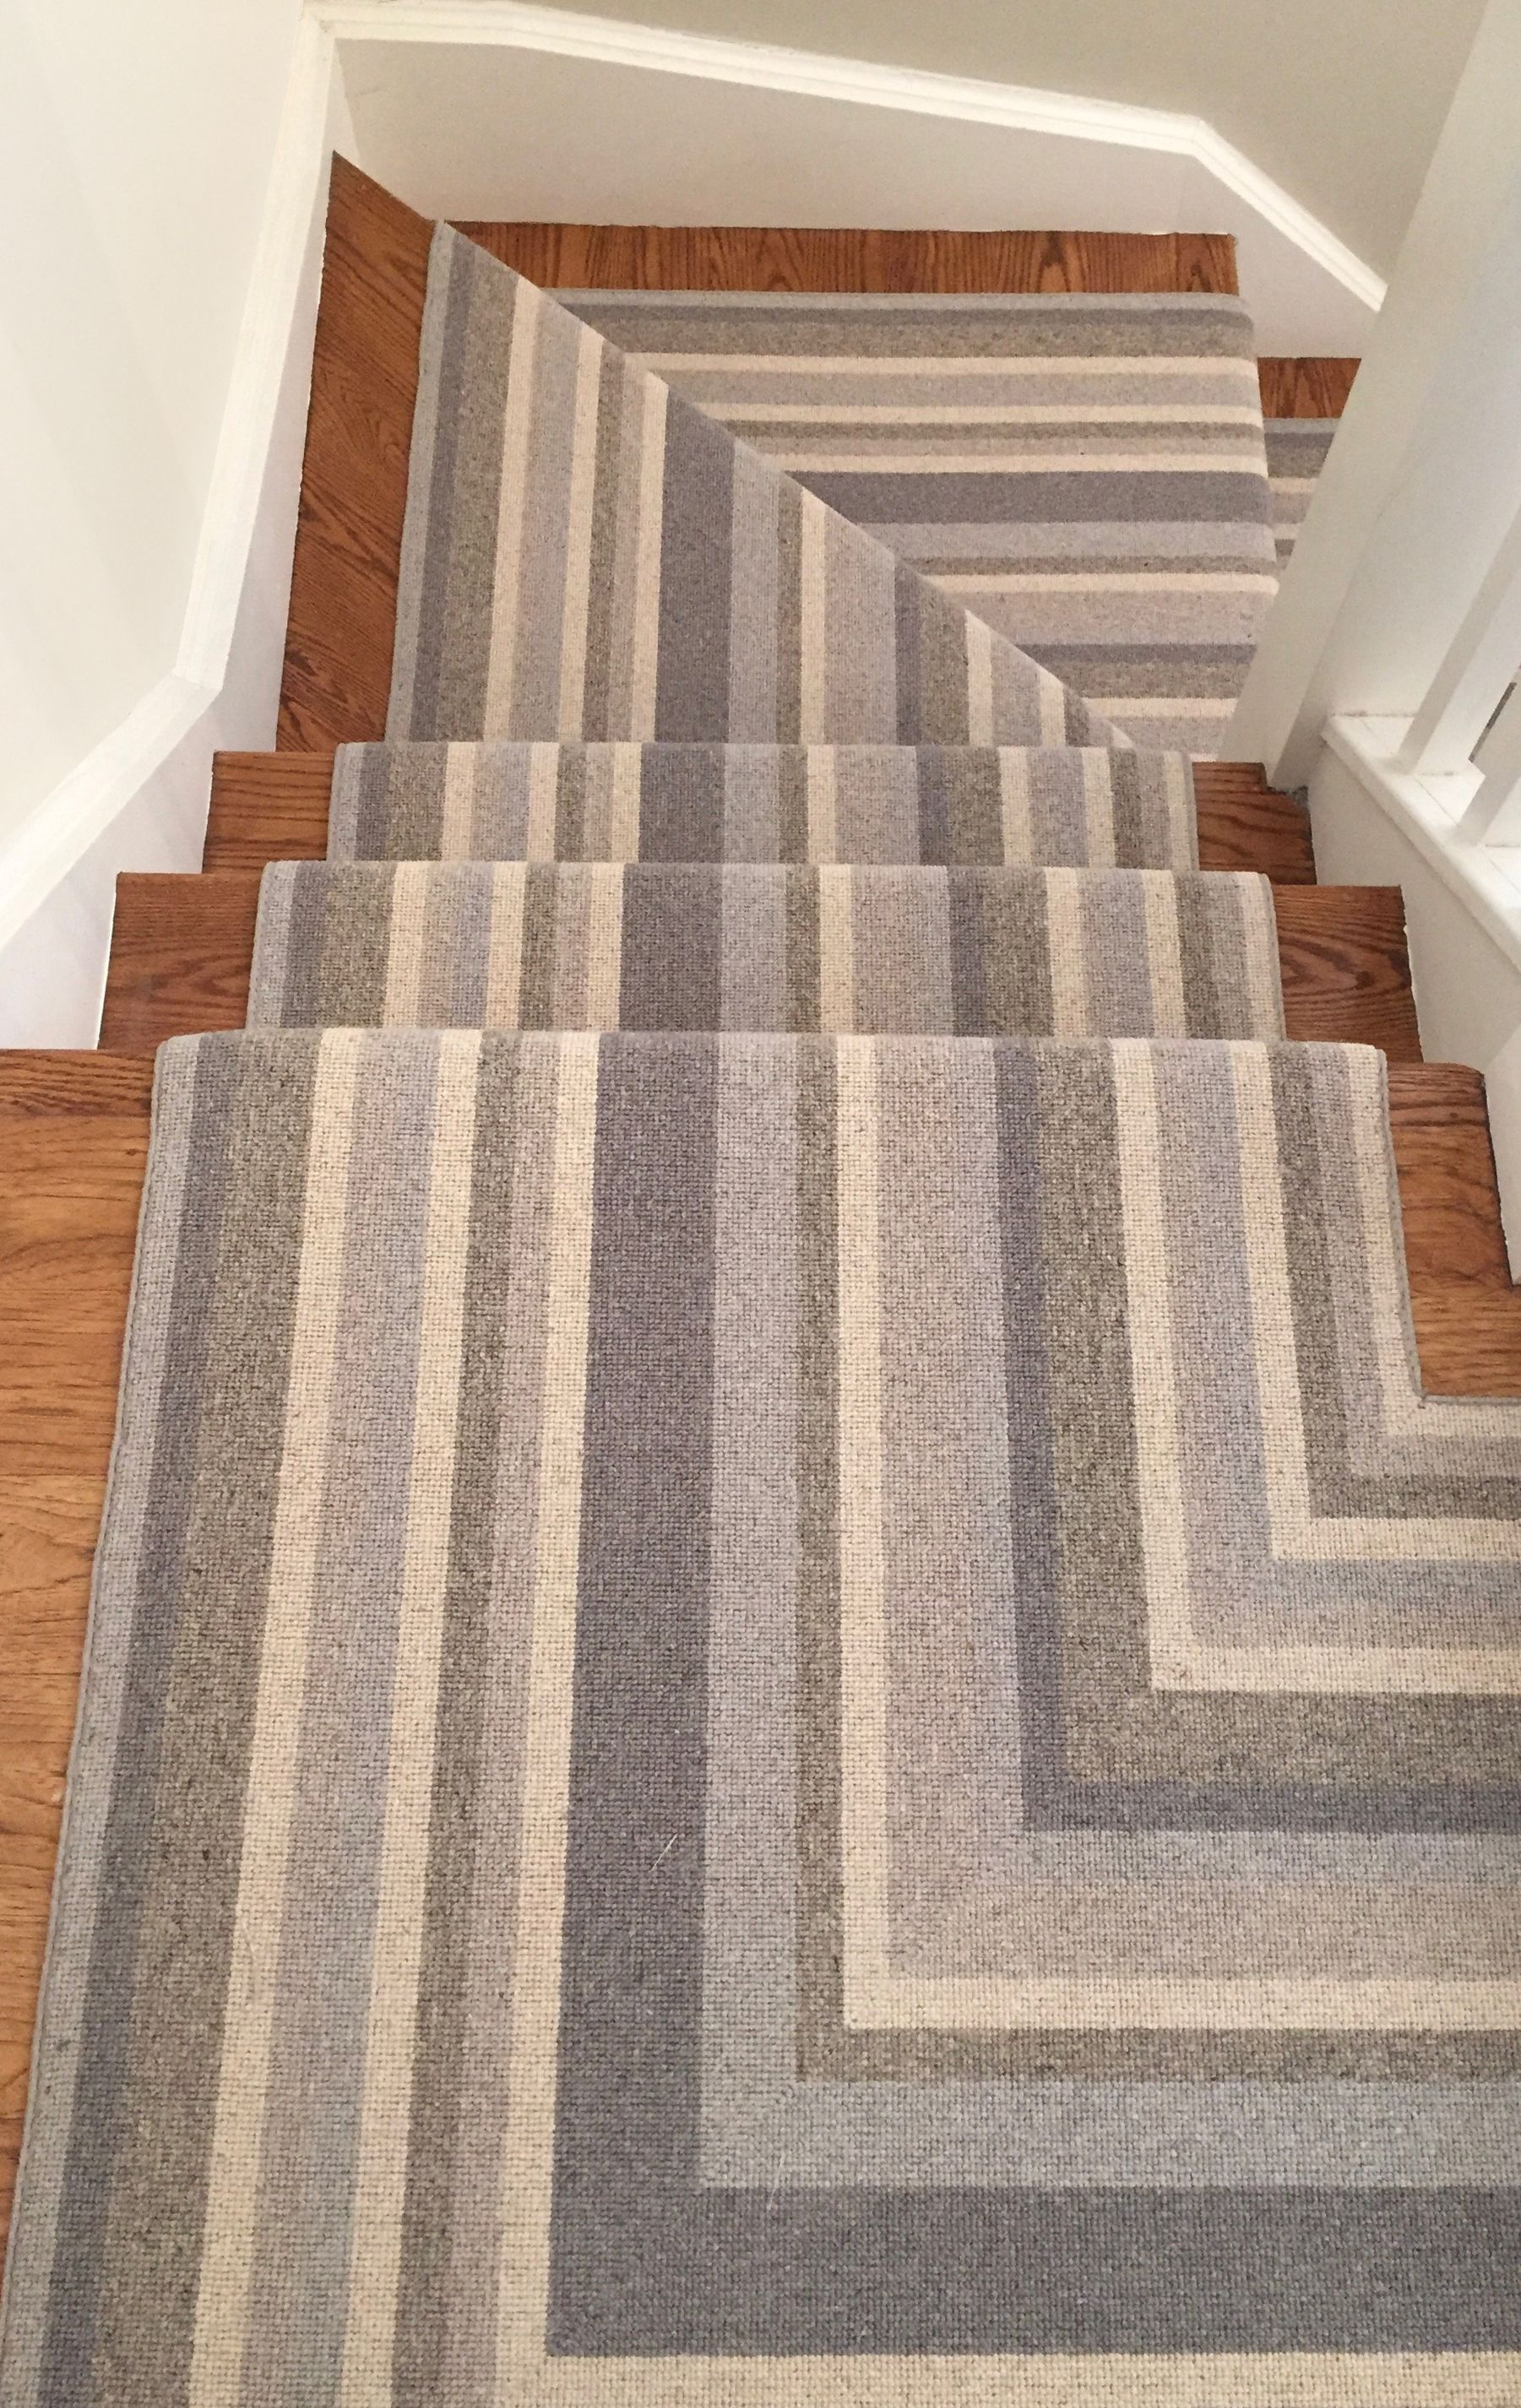 Using A Cortenaer Wool Carpet Product Stacy Begg Of Stacy Begg Design Was Not Shy About Using A Wide Carpet Stairs Hallway Carpet Runners Stair Runner Carpet